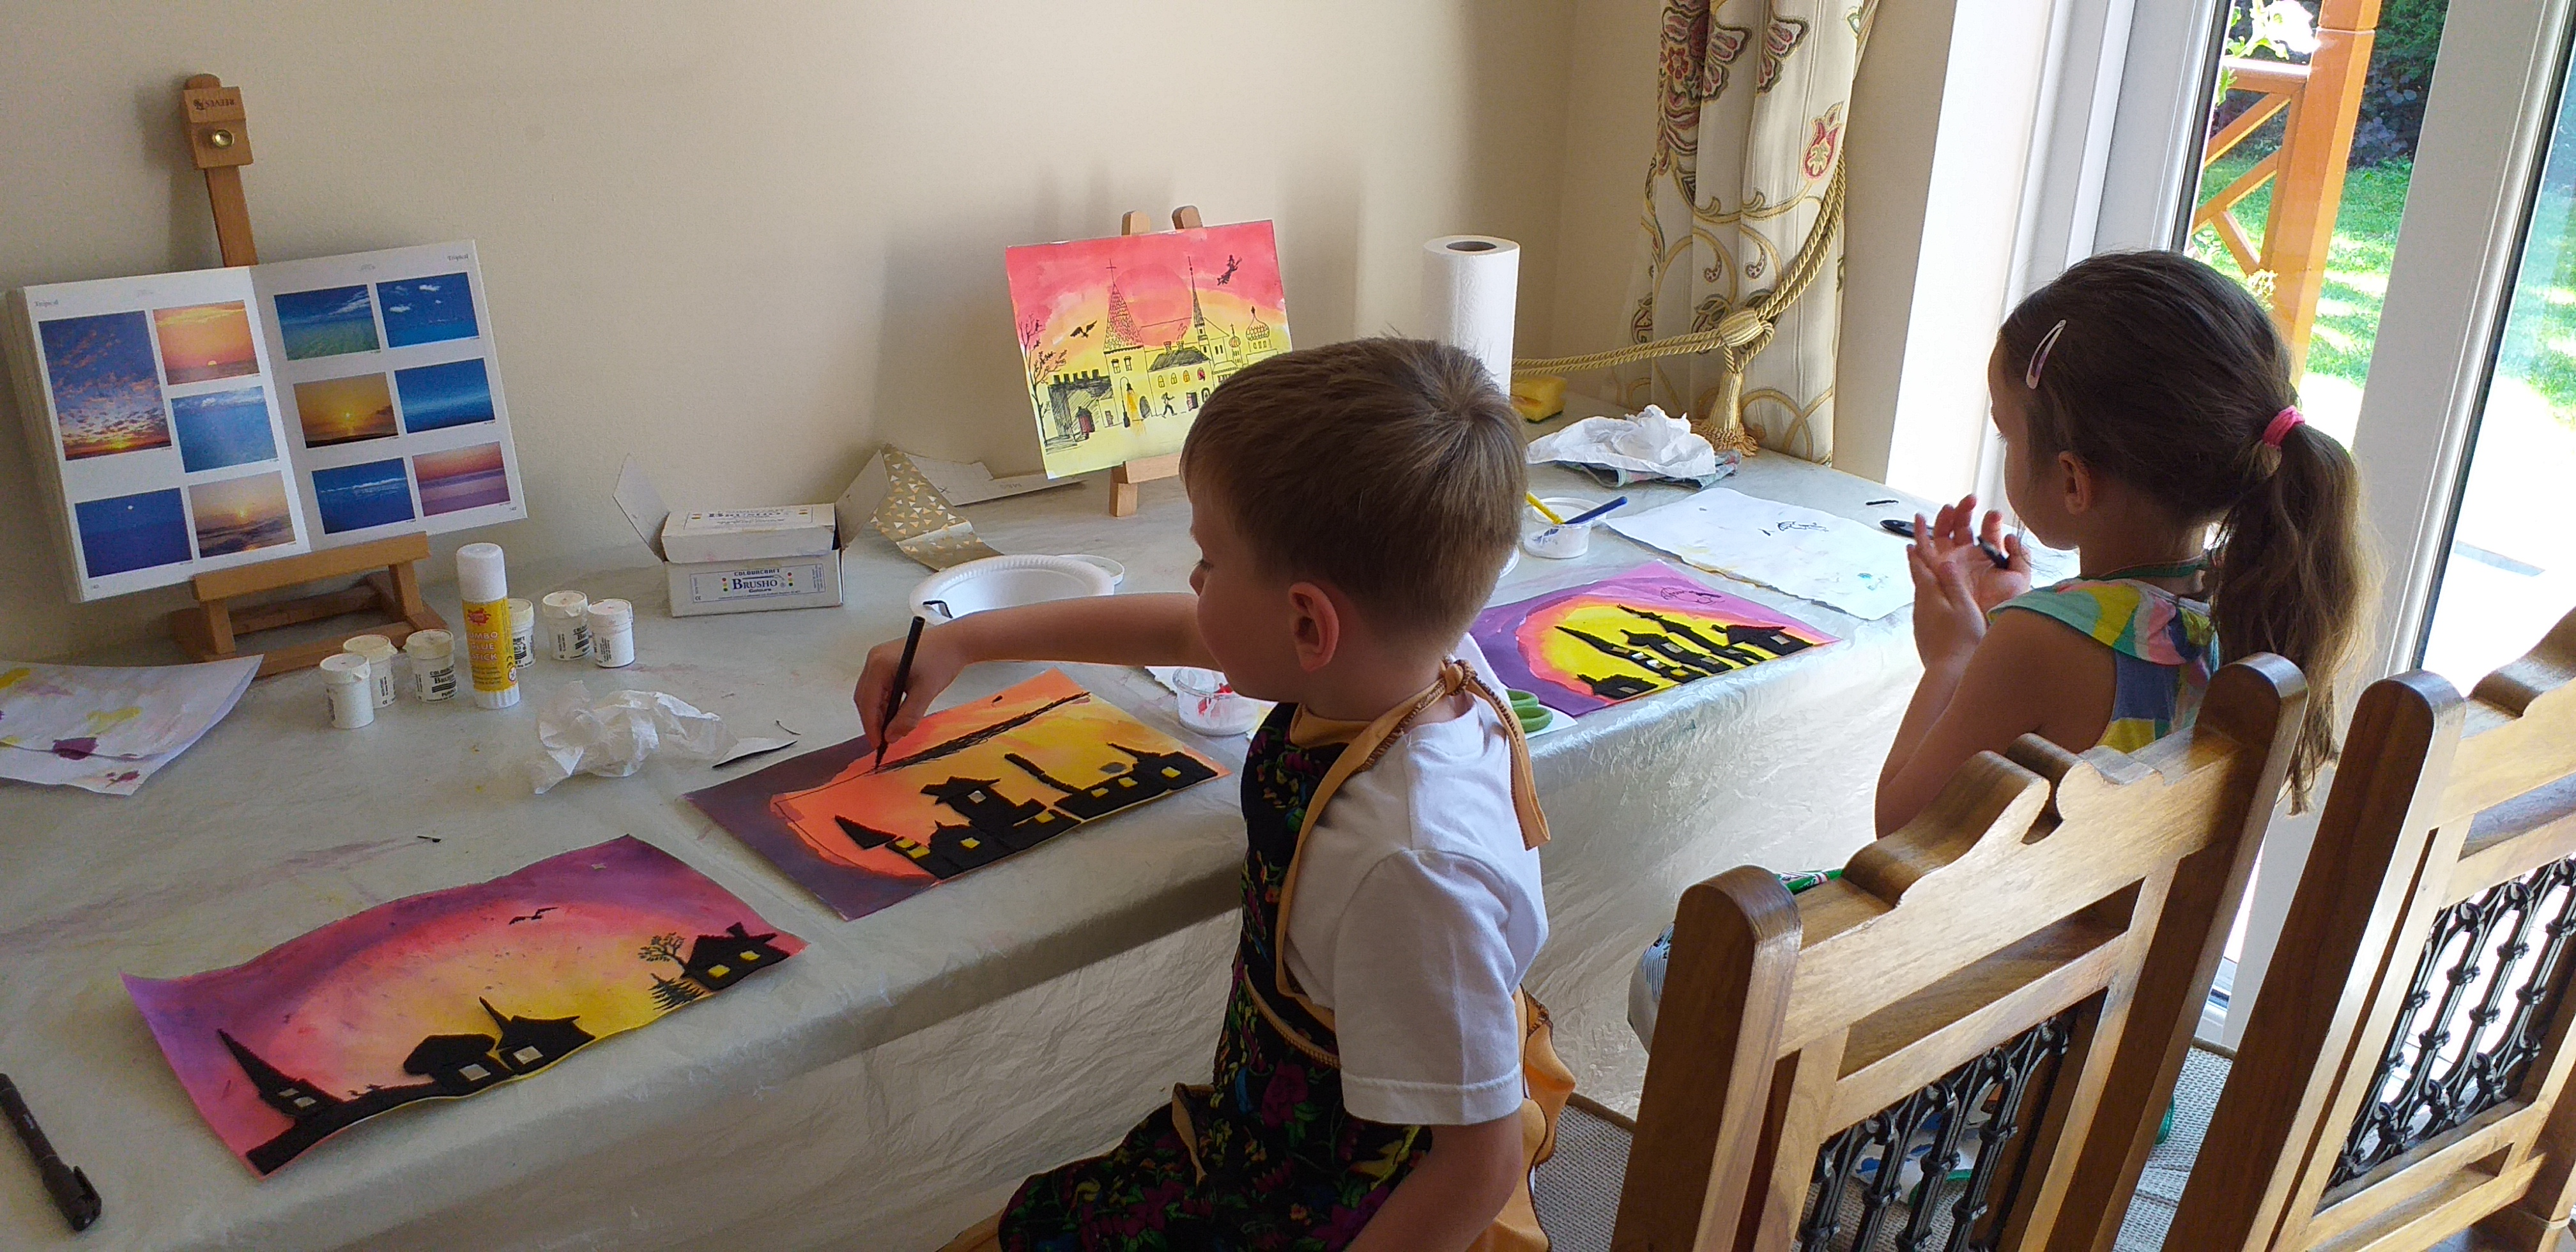 Children painting and drawing at Magic Wool Art and Craft Studio at Kidderminster Worcestershire